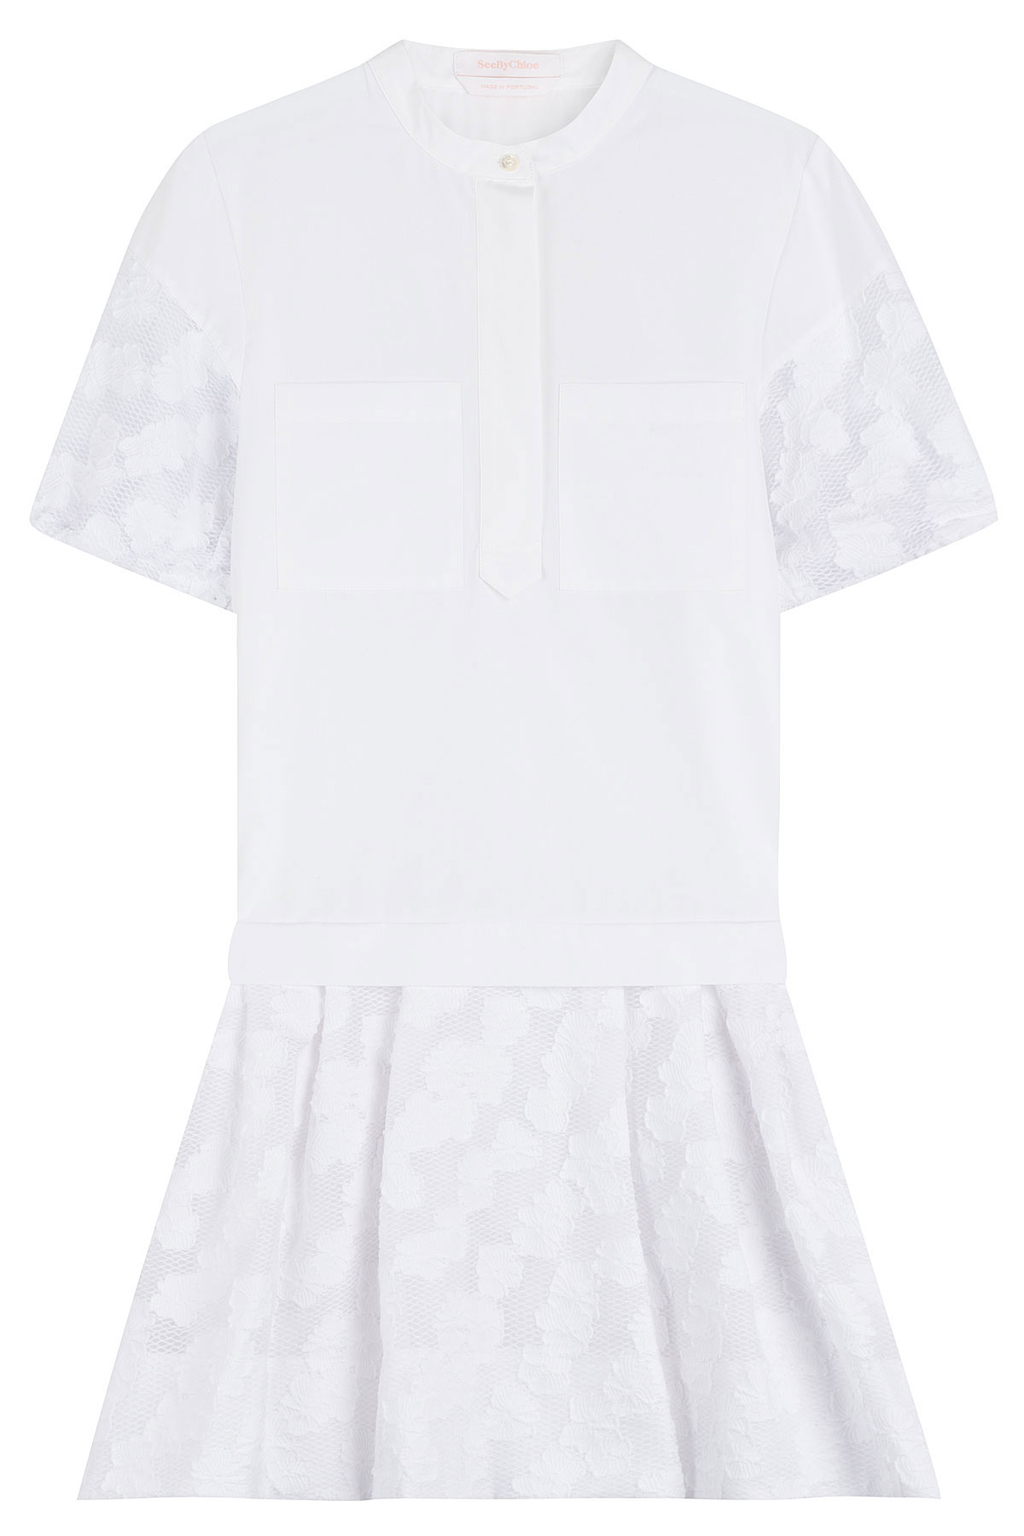 Cotton Dress - length: mid thigh; style: drop waist; pattern: polka dot; predominant colour: white; occasions: casual; fit: body skimming; neckline: collarstand; fibres: cotton - 100%; sleeve length: short sleeve; sleeve style: standard; texture group: cotton feel fabrics; pattern type: fabric; season: s/s 2016; wardrobe: highlight